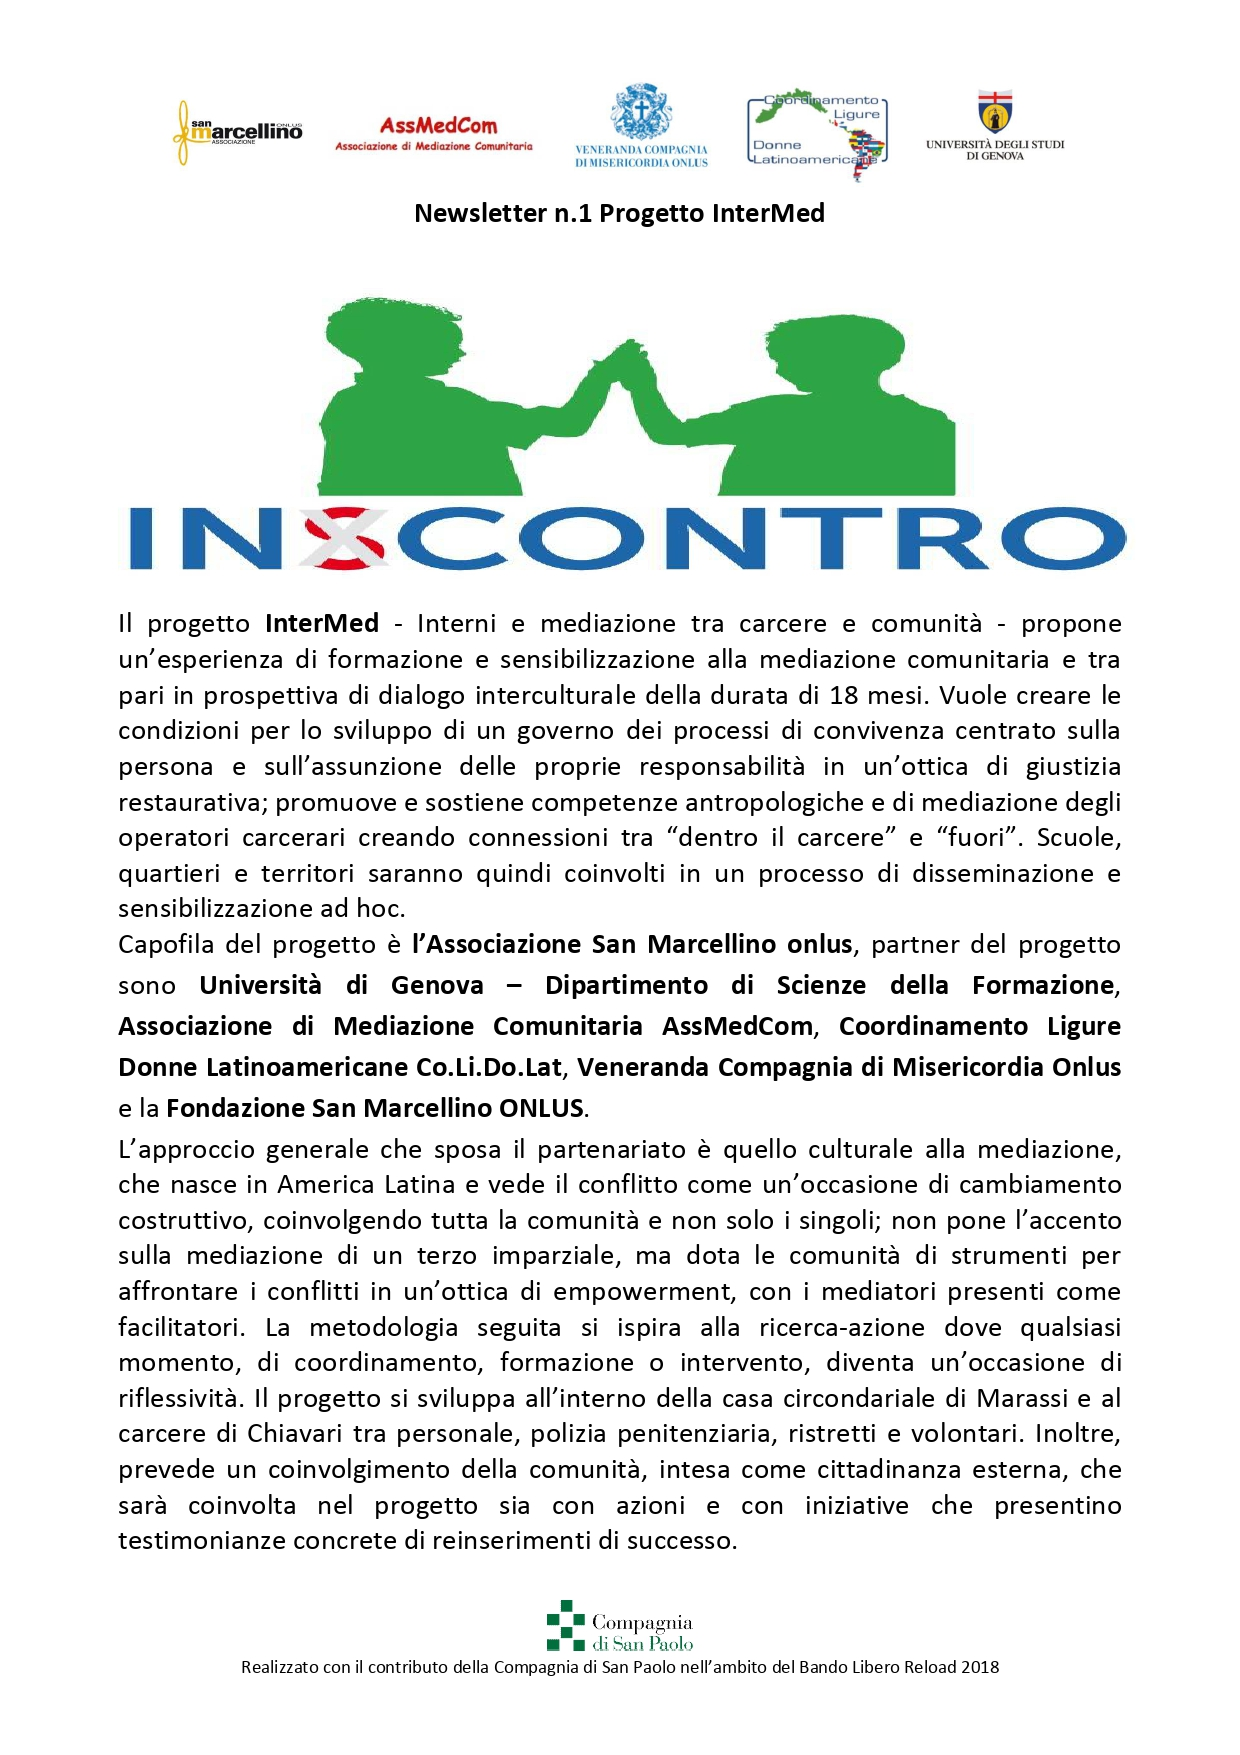 INSCONTRO INTERMED